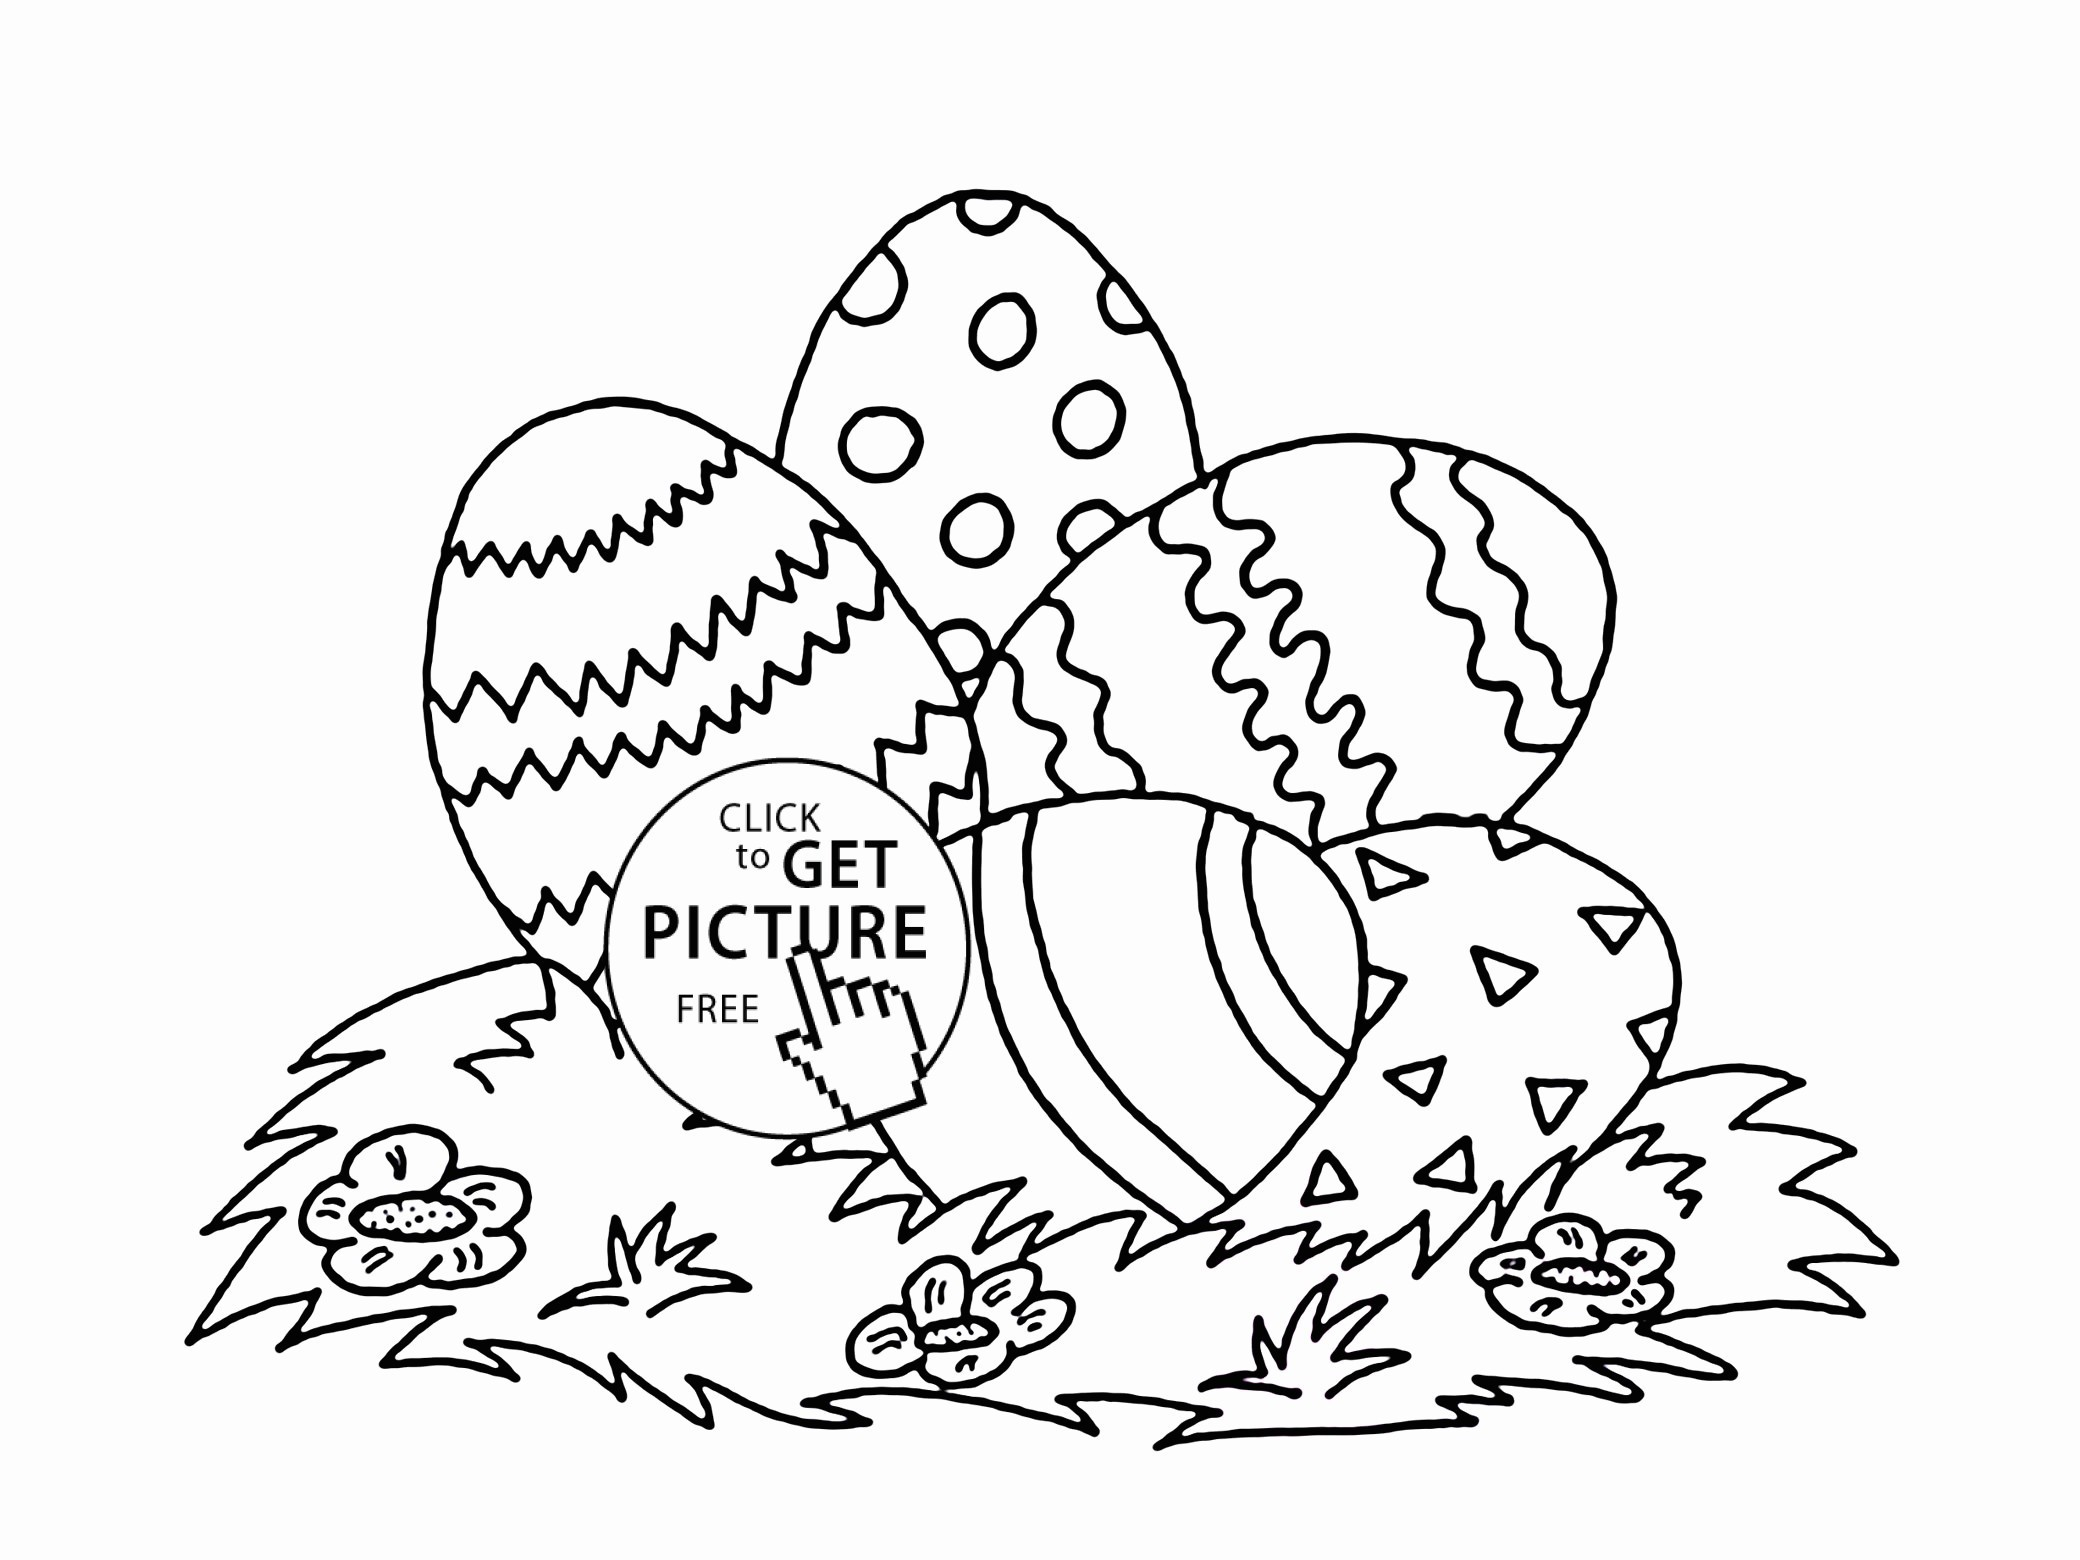 21 Coloring Easter Pages to Print Download | Coloring Sheets